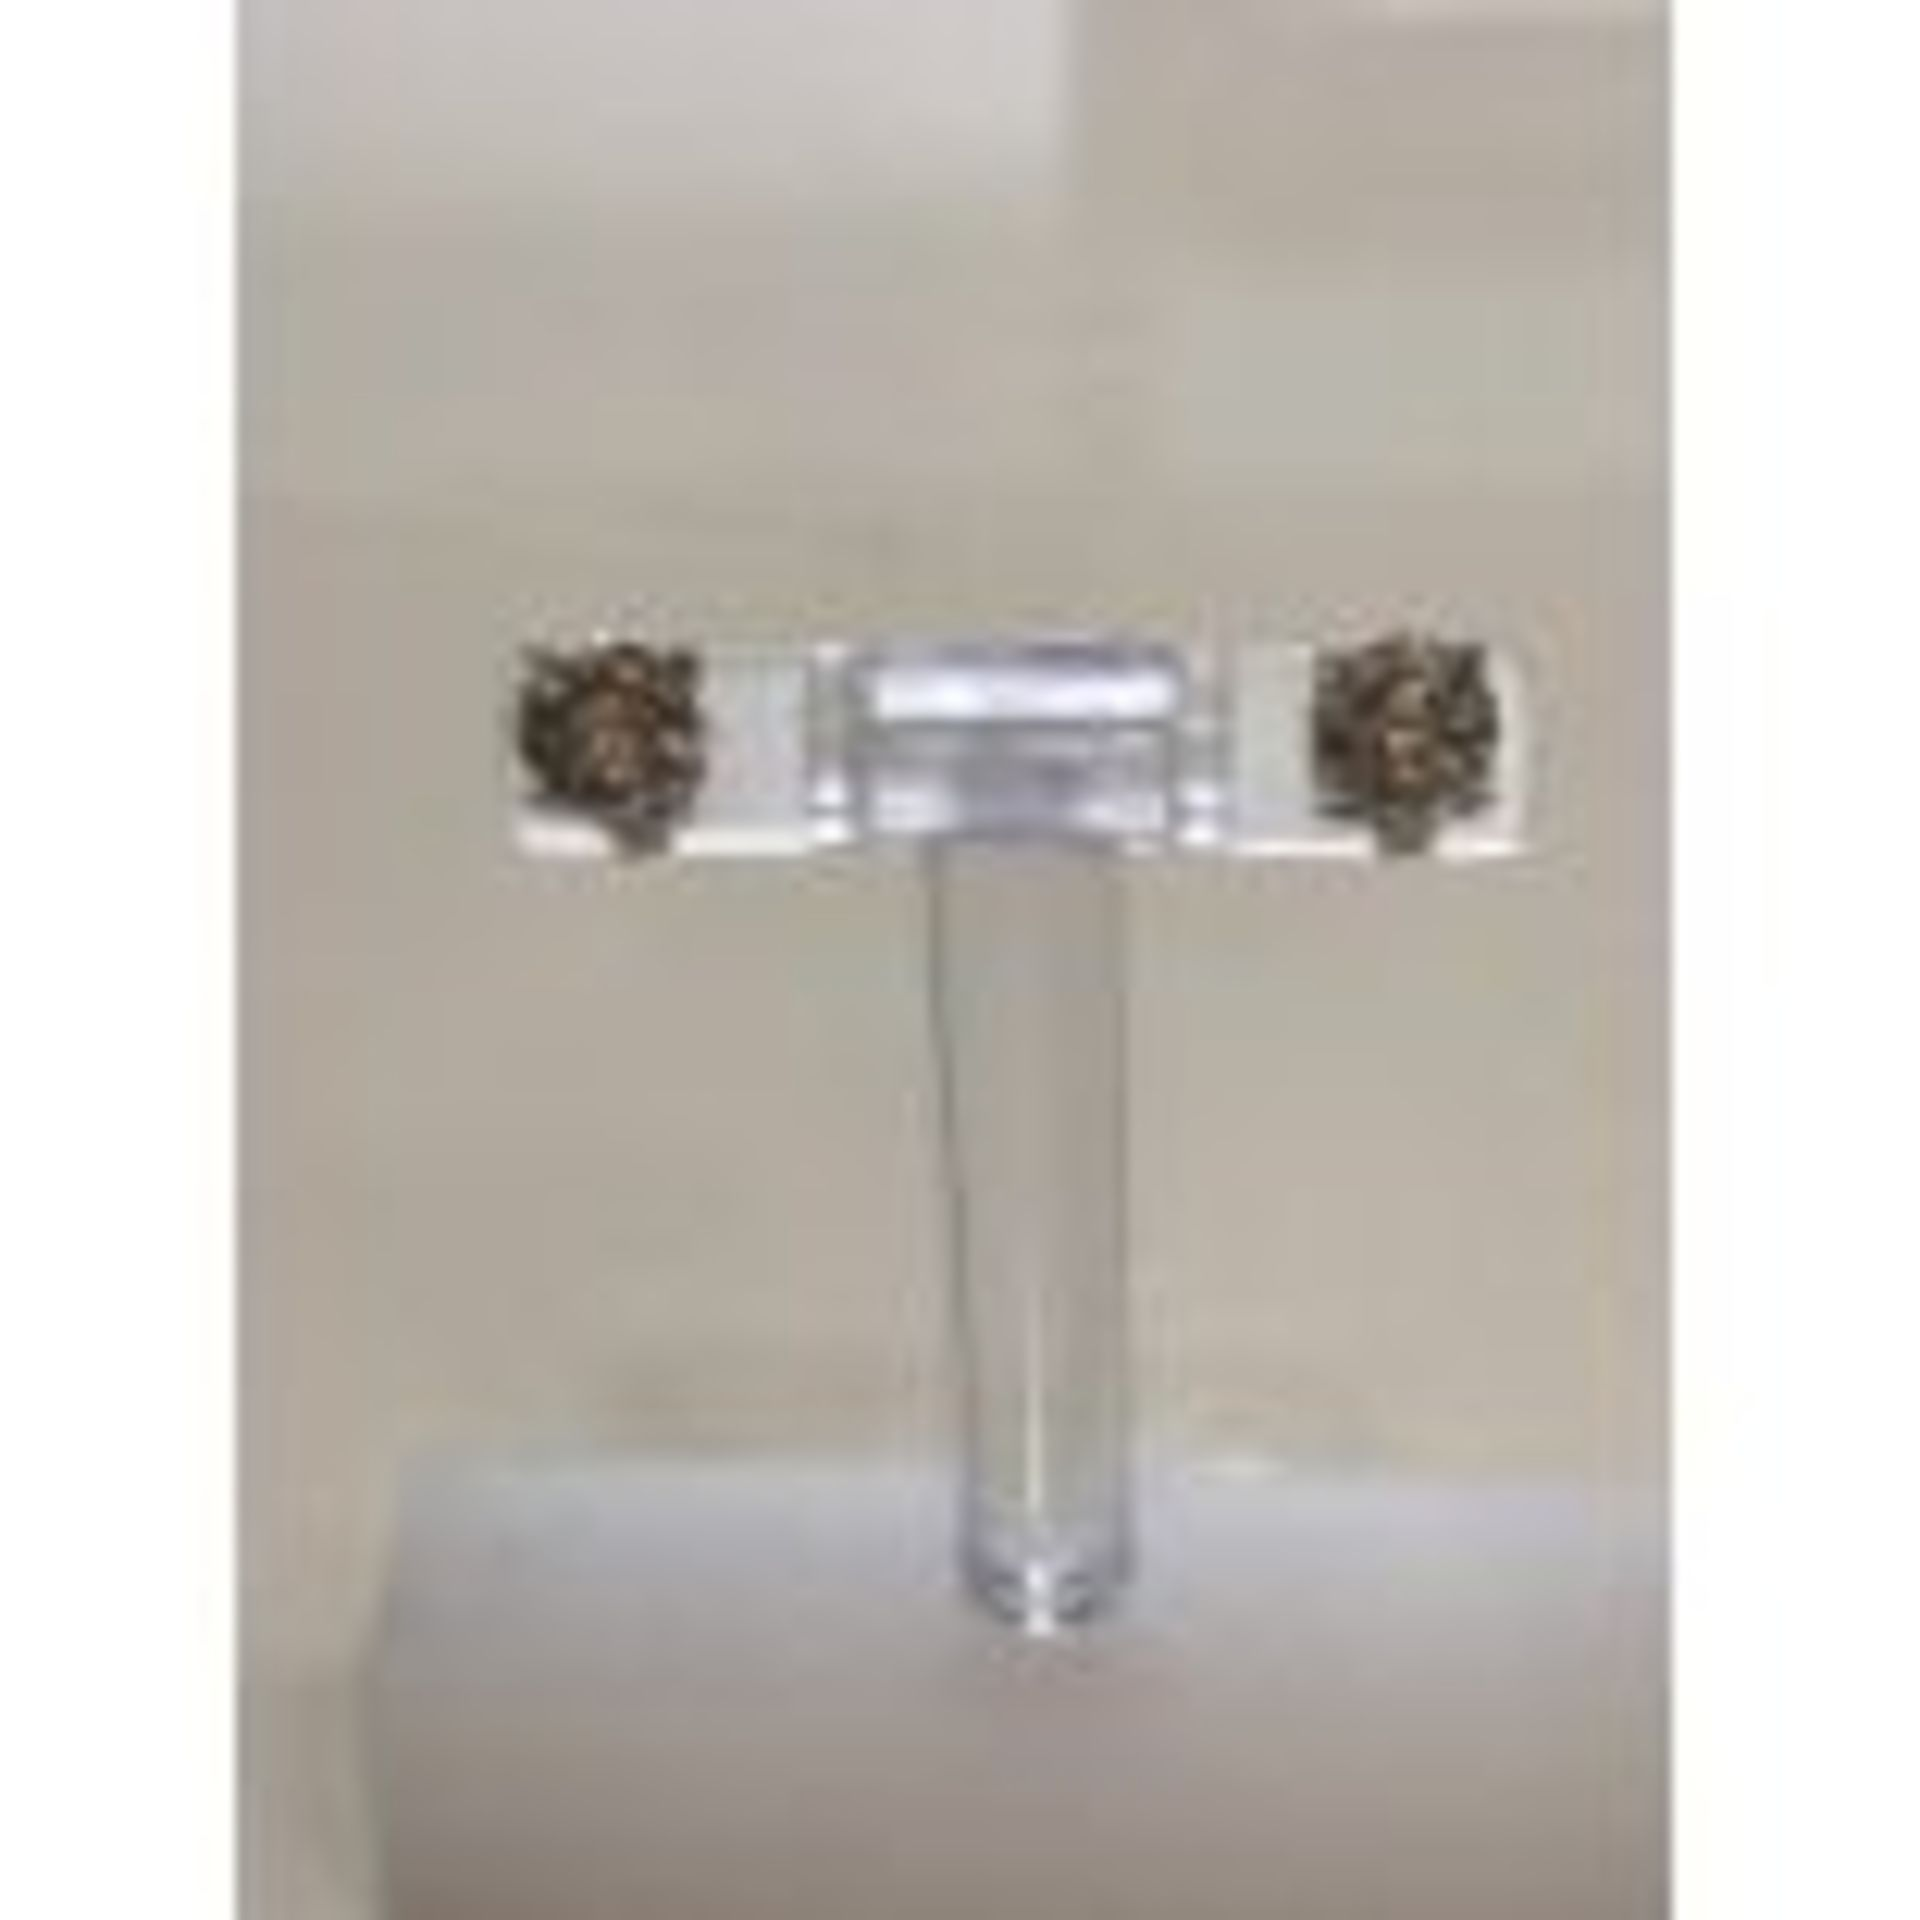 RRP £8,950 18 Carat White Gold Solitaire Diamond Solitaire Earrings, Total Stone Weight 2.06Ct, K - Image 2 of 2